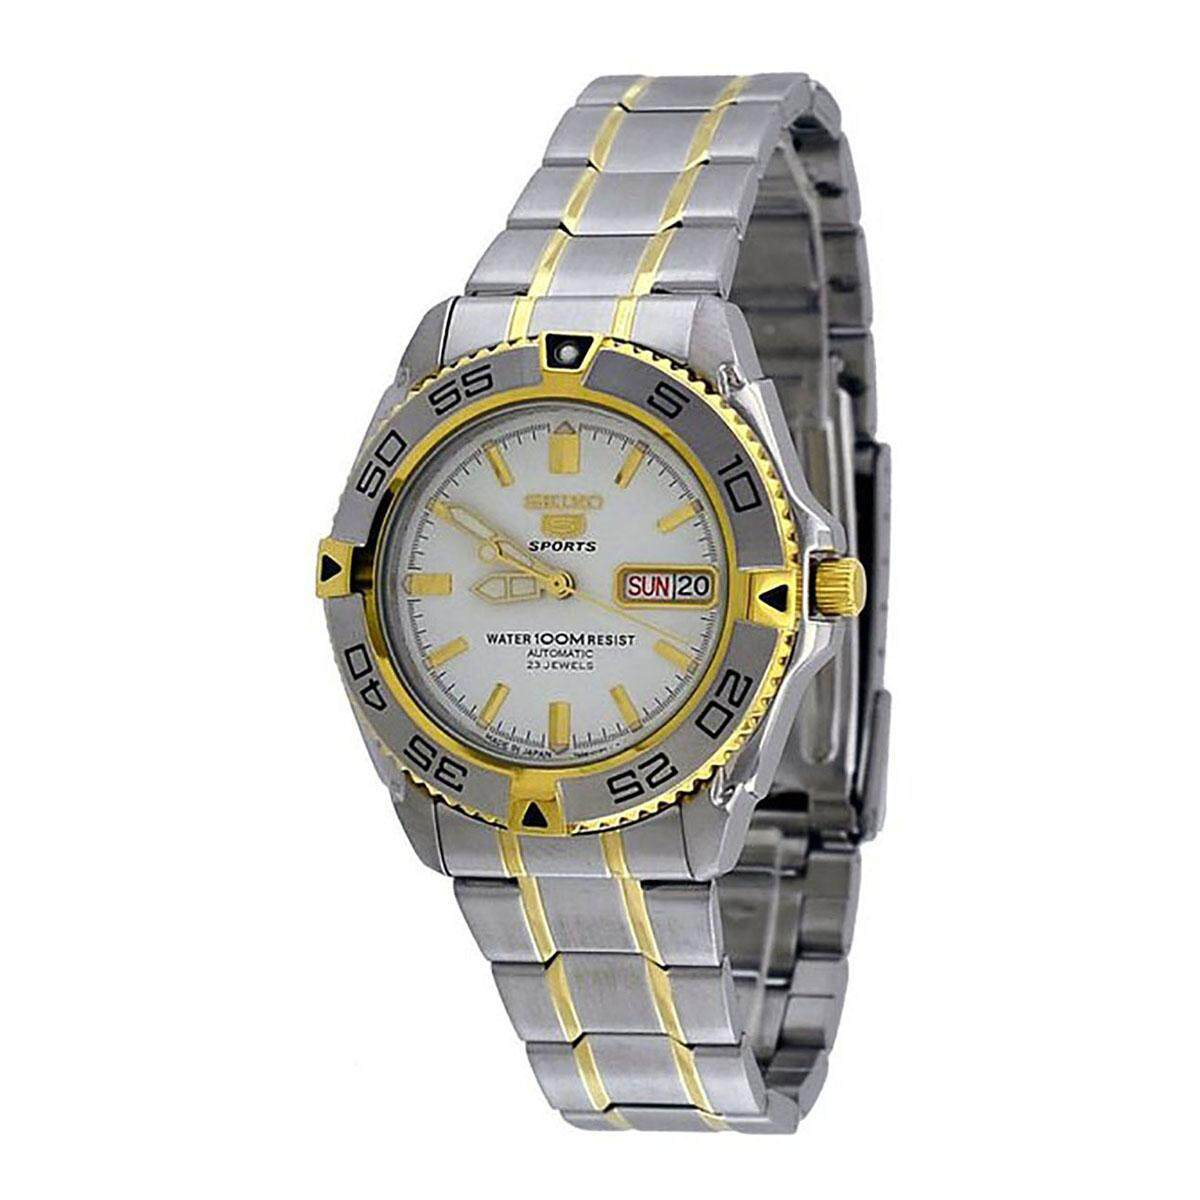 Buy Sell Cheapest Seiko Sports White Best Quality Product Deals Kinetic Ska683p1 Silver Dial Stainless Steel Bracelet 5 Multicolored Case Two Tone